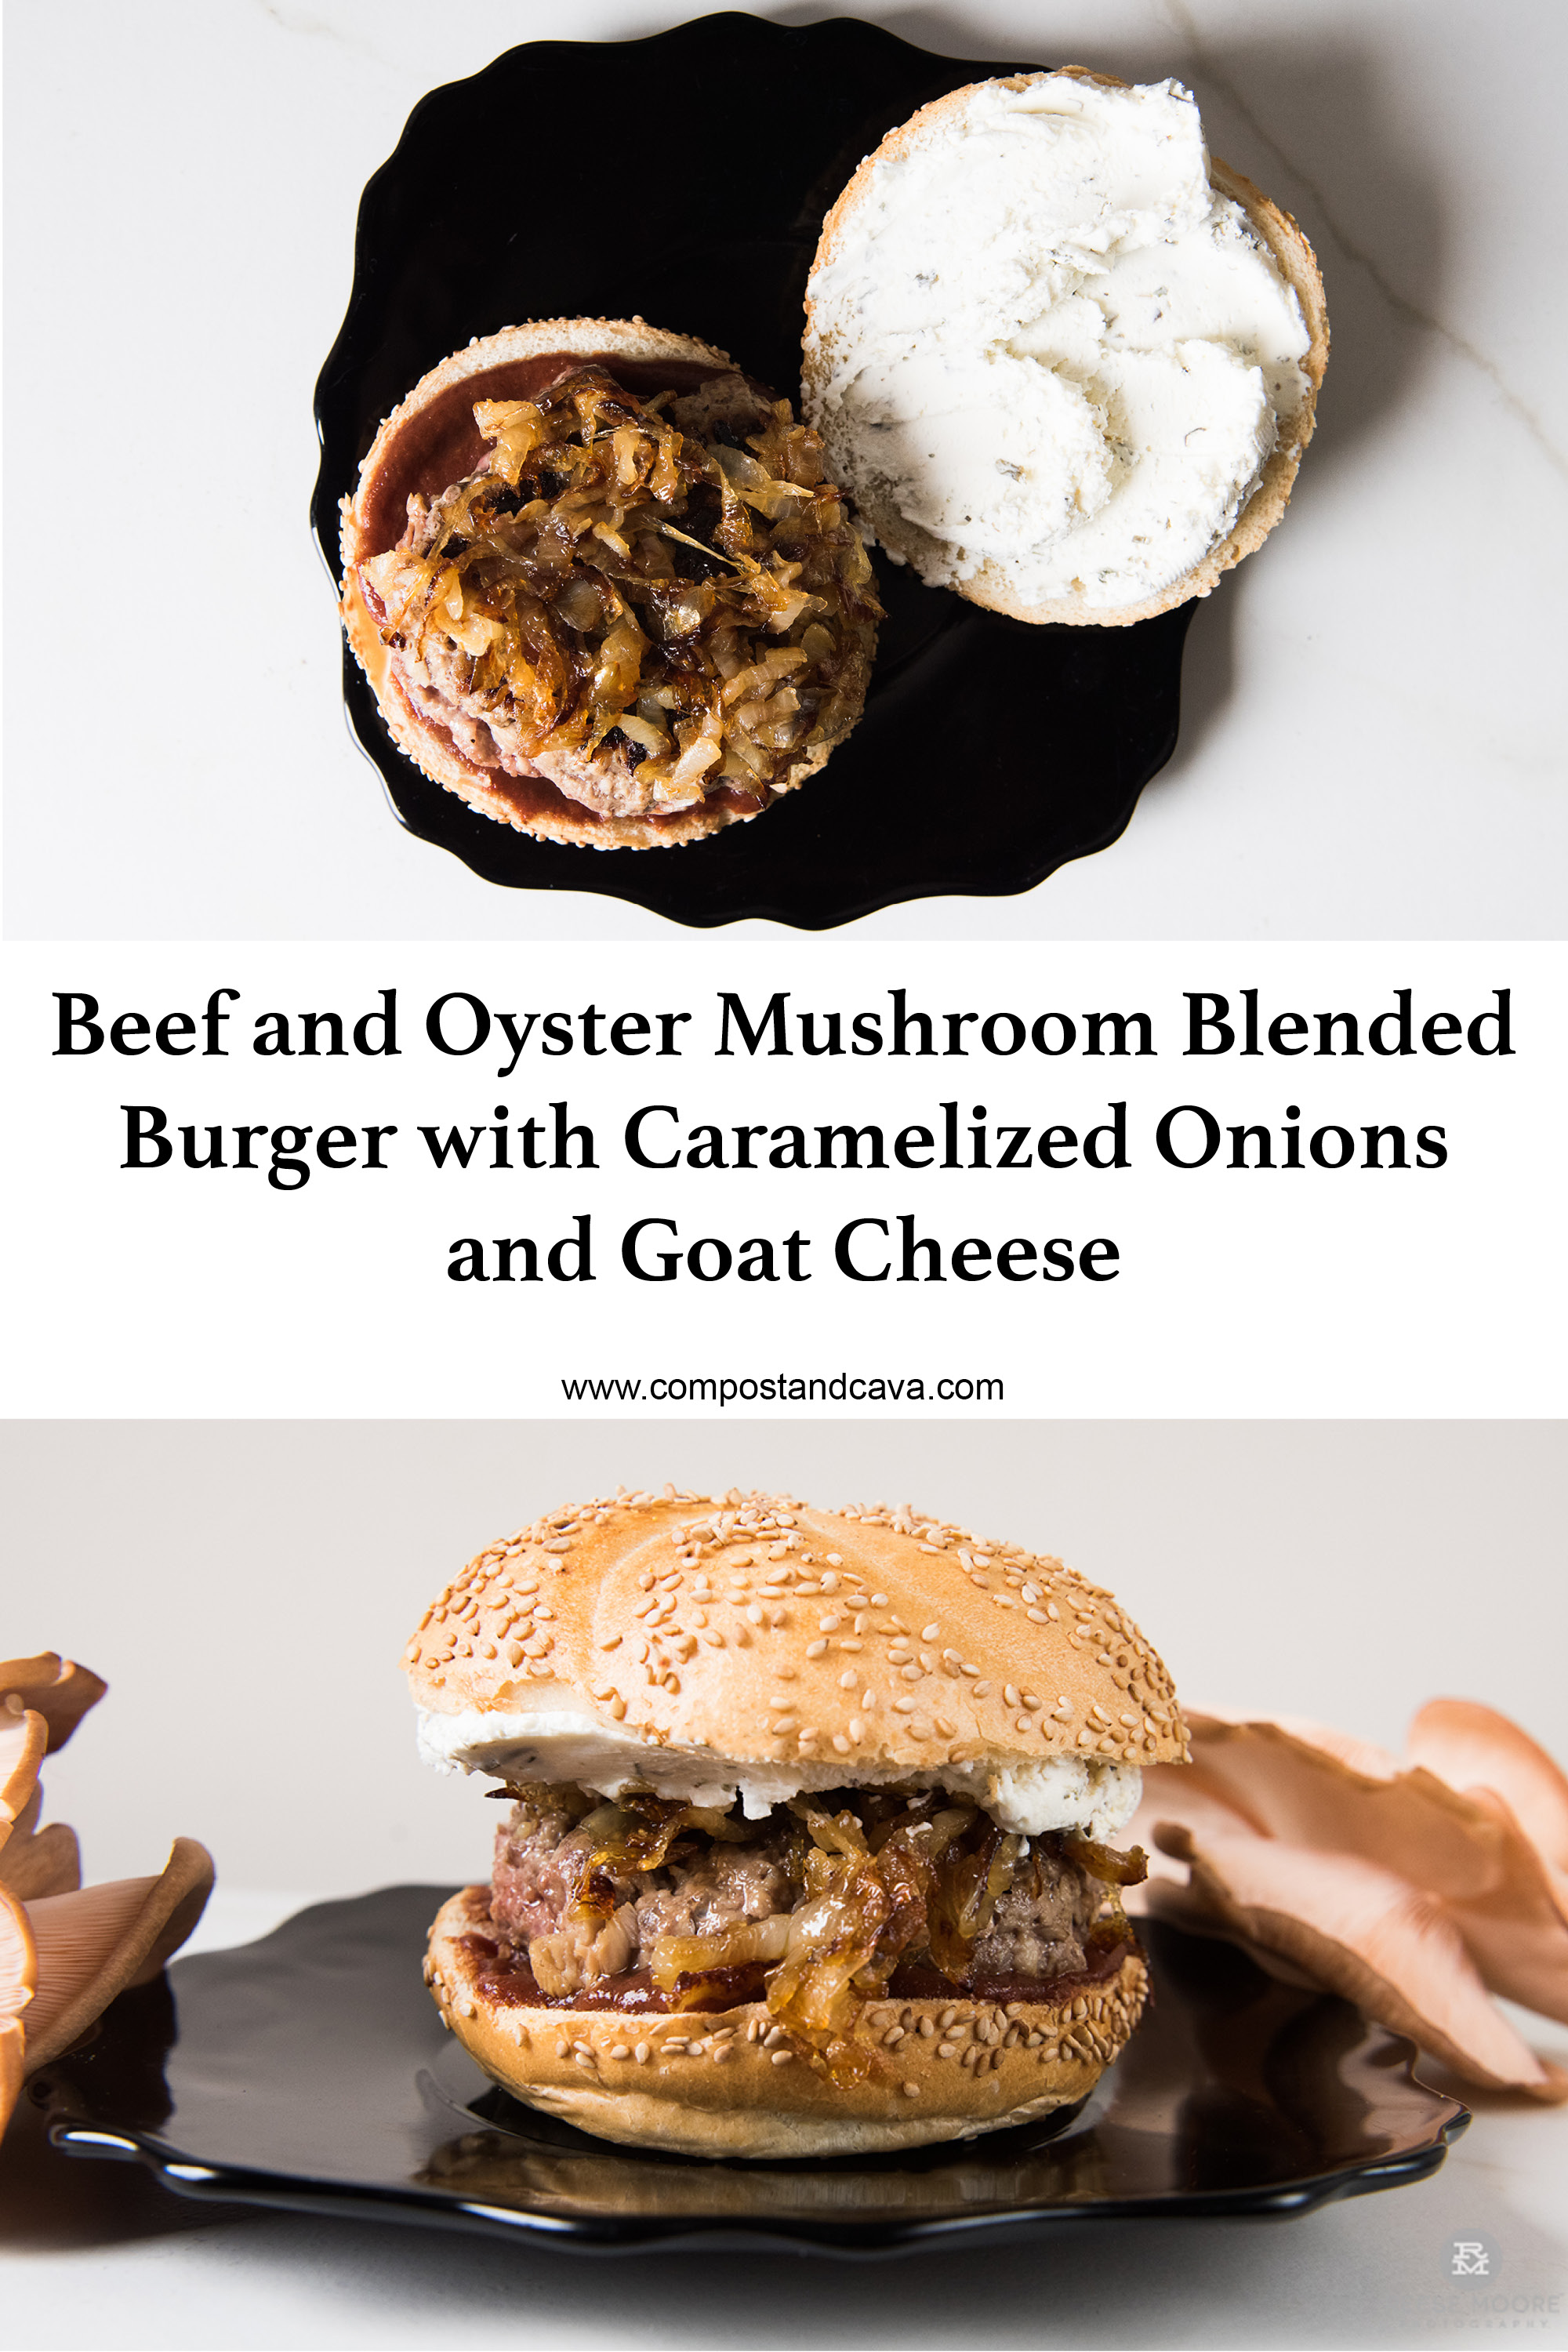 Blended Burger Recipe- Beef and Oyster Mushroom Burger with Caramelized Onions and Goat Cheese.jpg